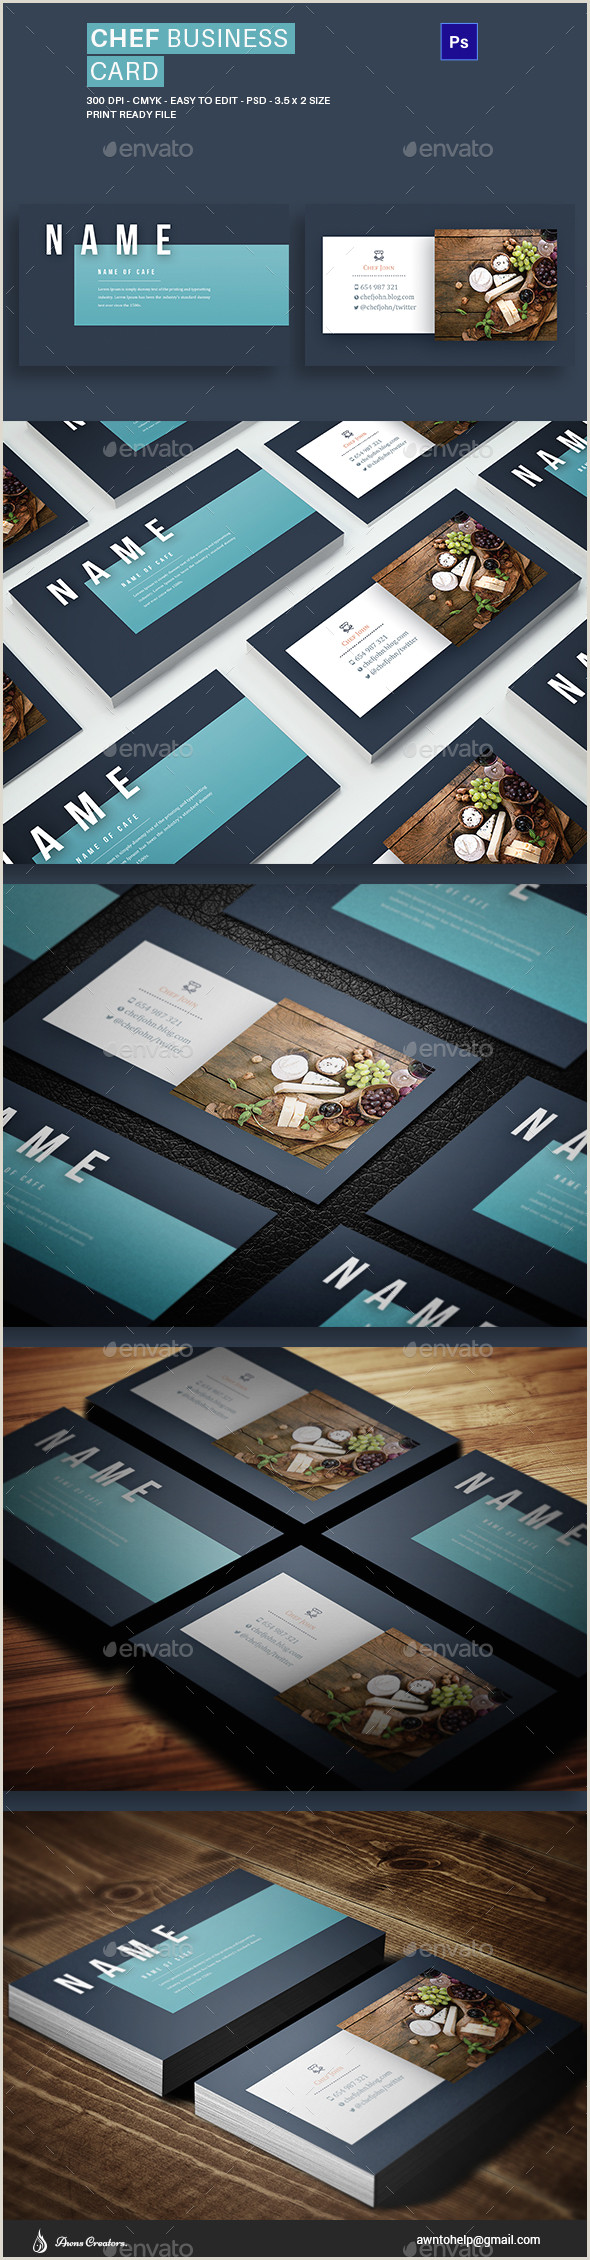 Best Business Cards For Chefs Chef Business Card Graphics Designs & Templates